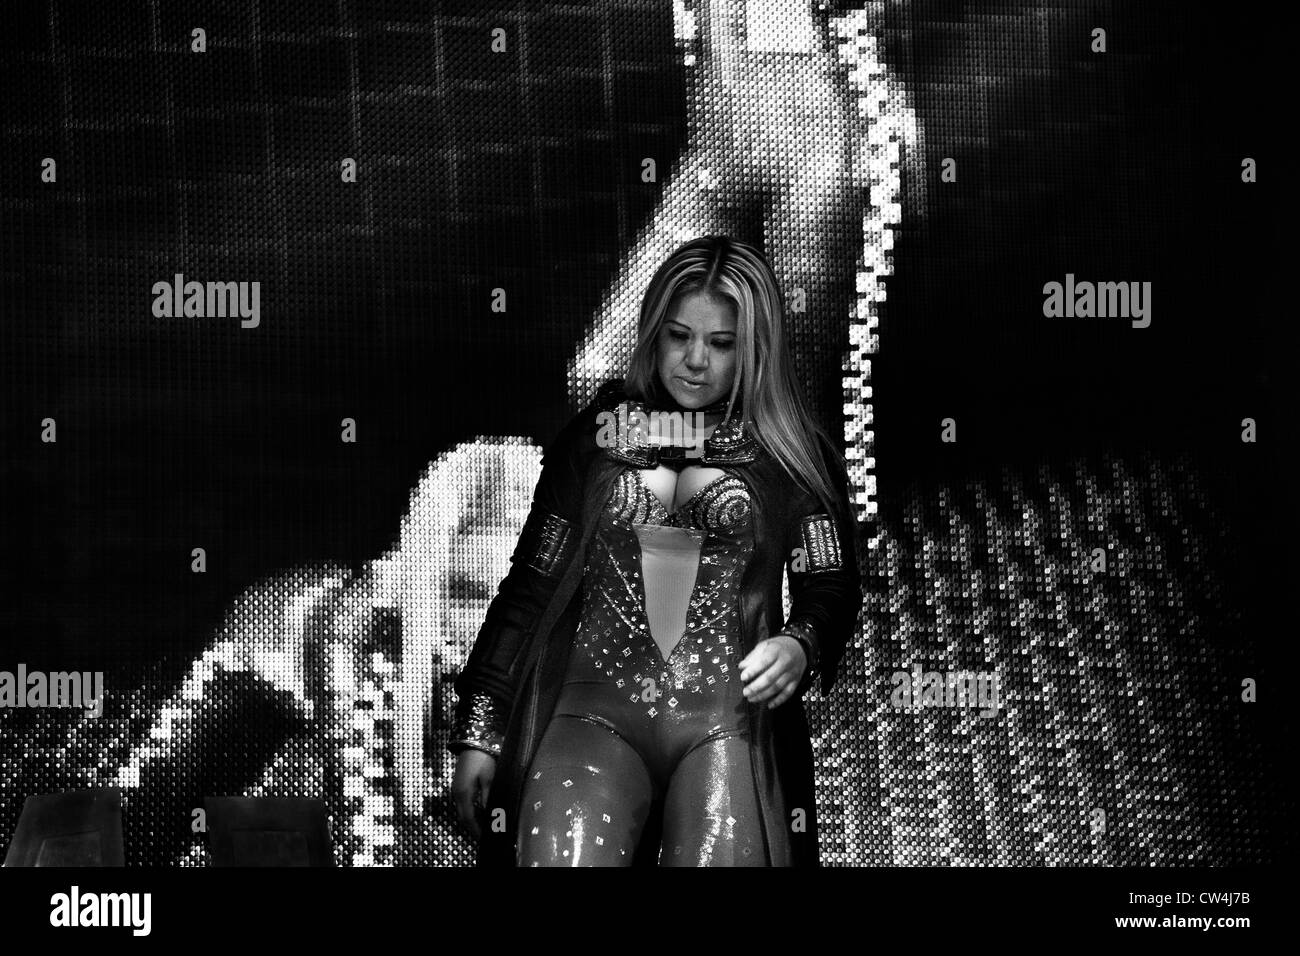 A female Lucha libre wrestler Tiffany walks out for her fight at Arena Mexico in Mexico City, Mexico. - Stock Image